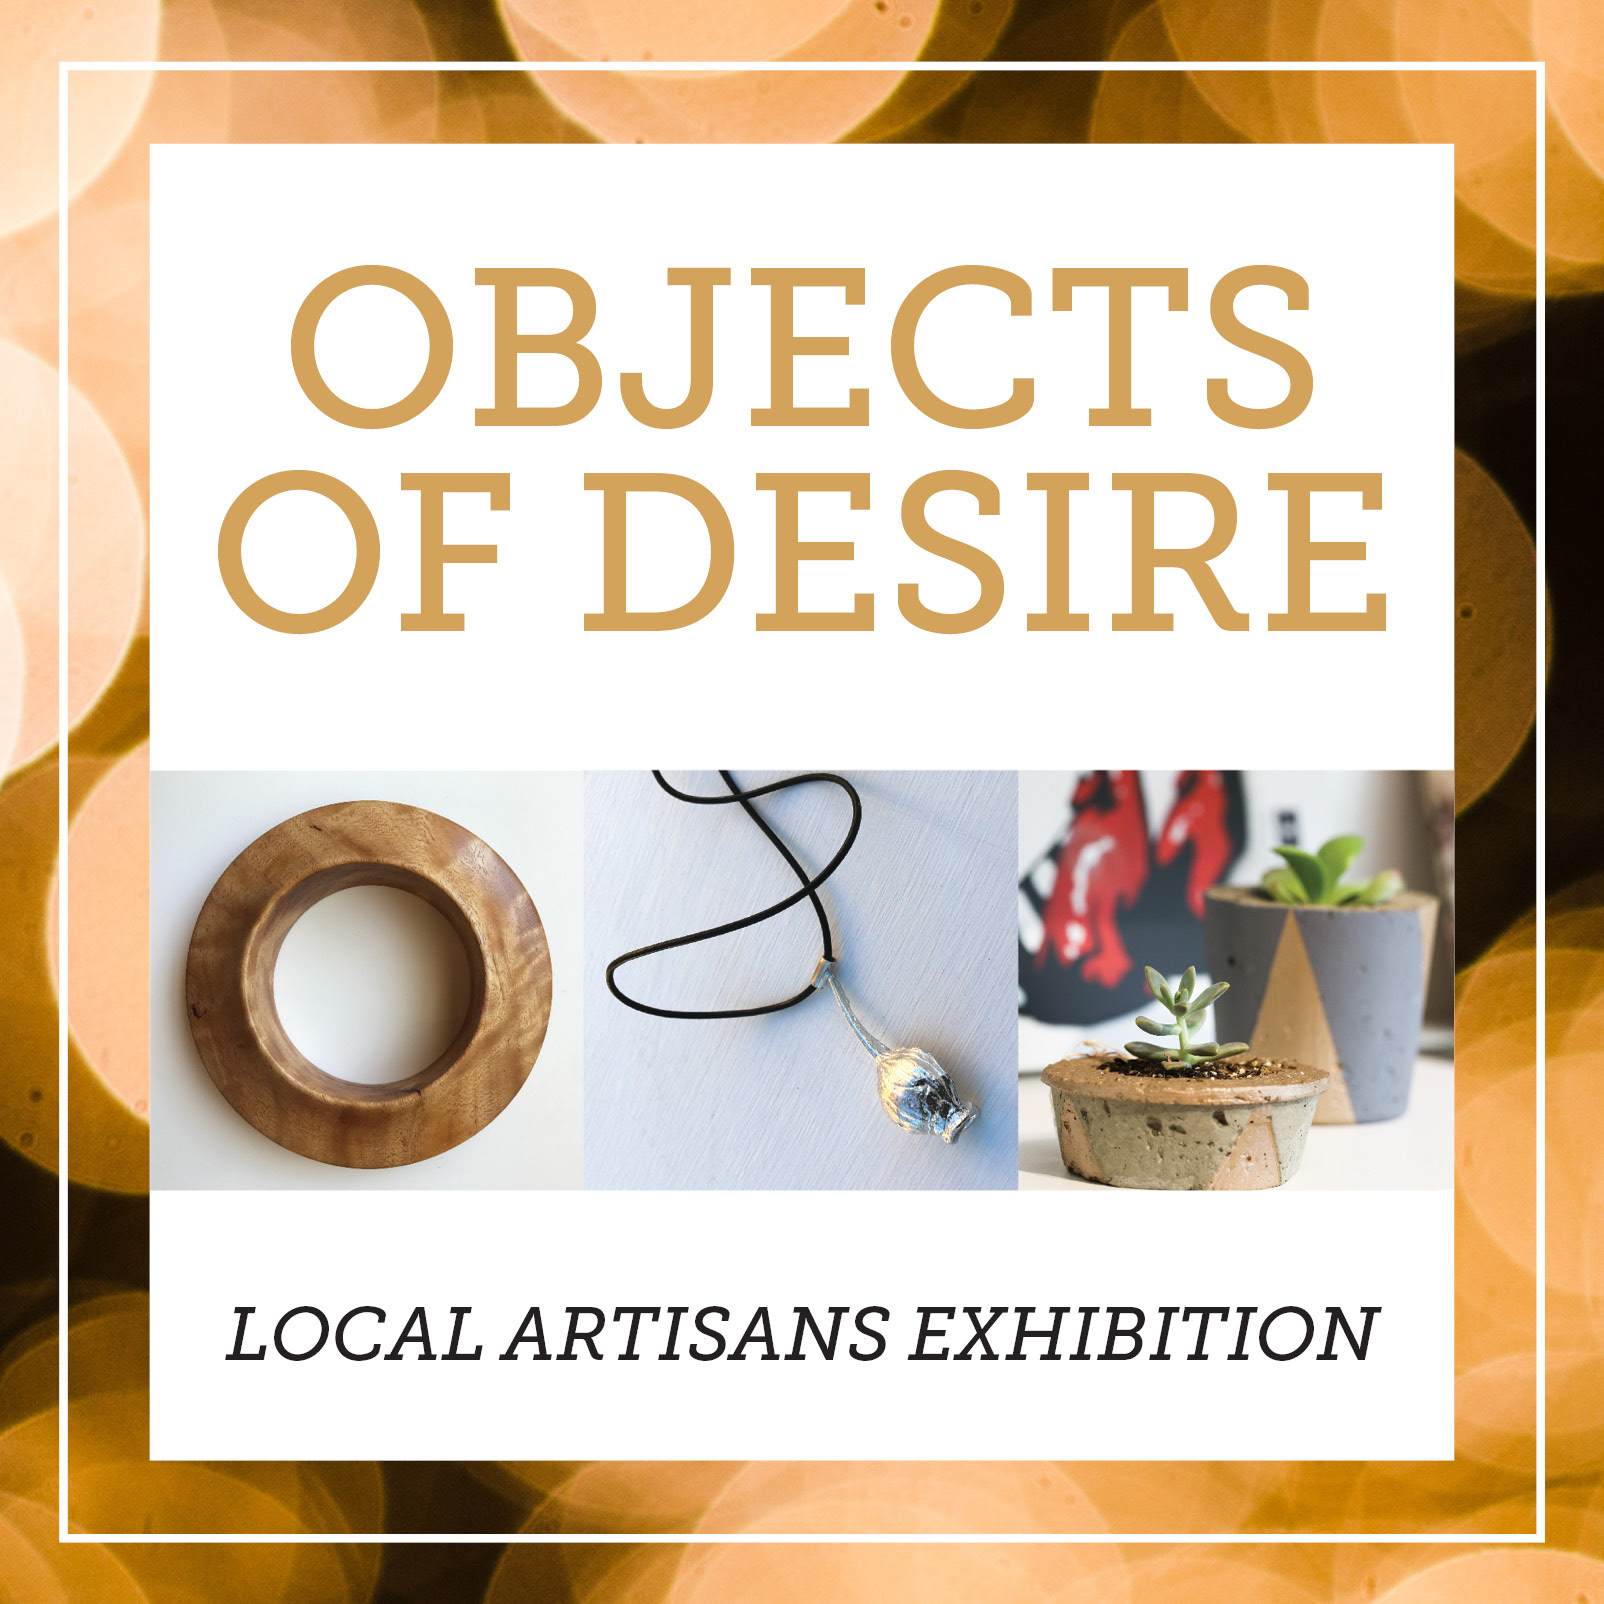 COMMUNITY EXHIBITION: OBJECTS OF DESIRE